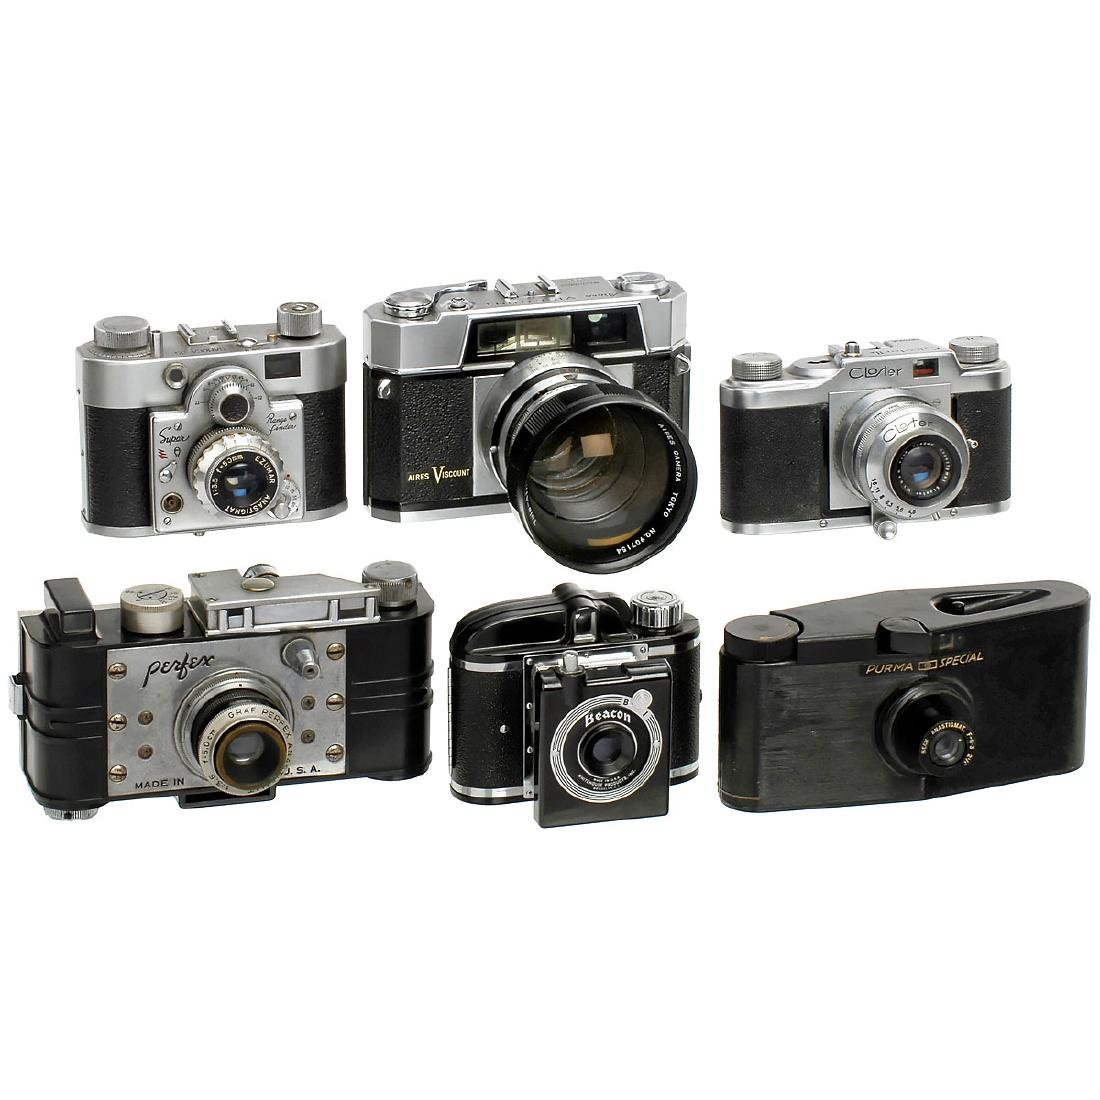 Cameras from Japan, Italy, USA and England